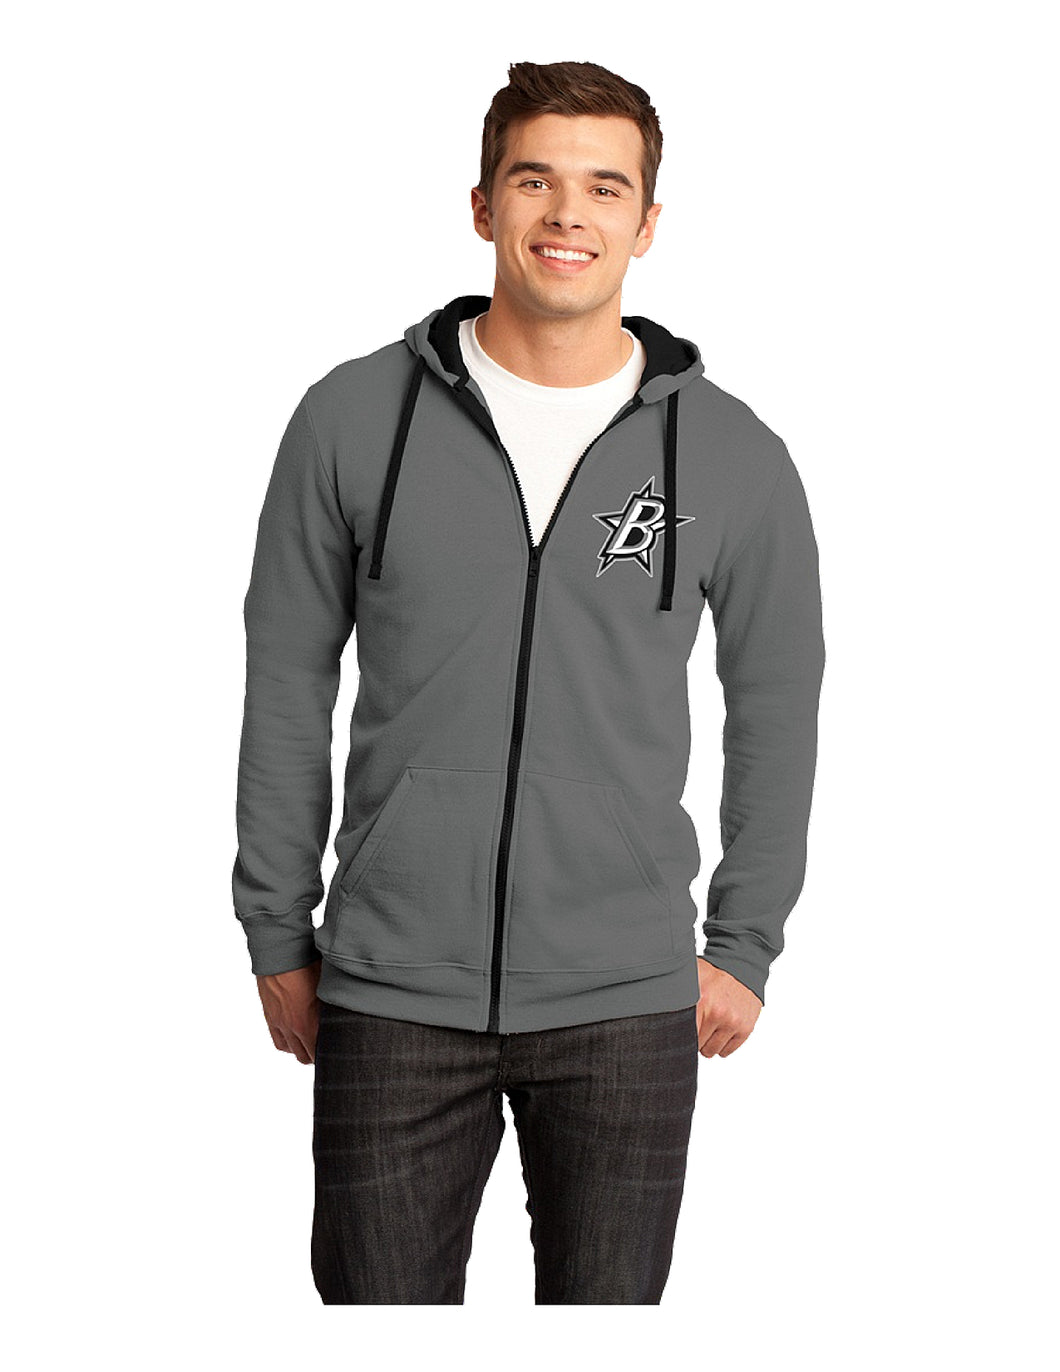 Black Stars District ® The Concert Fleece ® Full-Zip Hoodie Grey With Black Stars Hockey Logo (DT800)